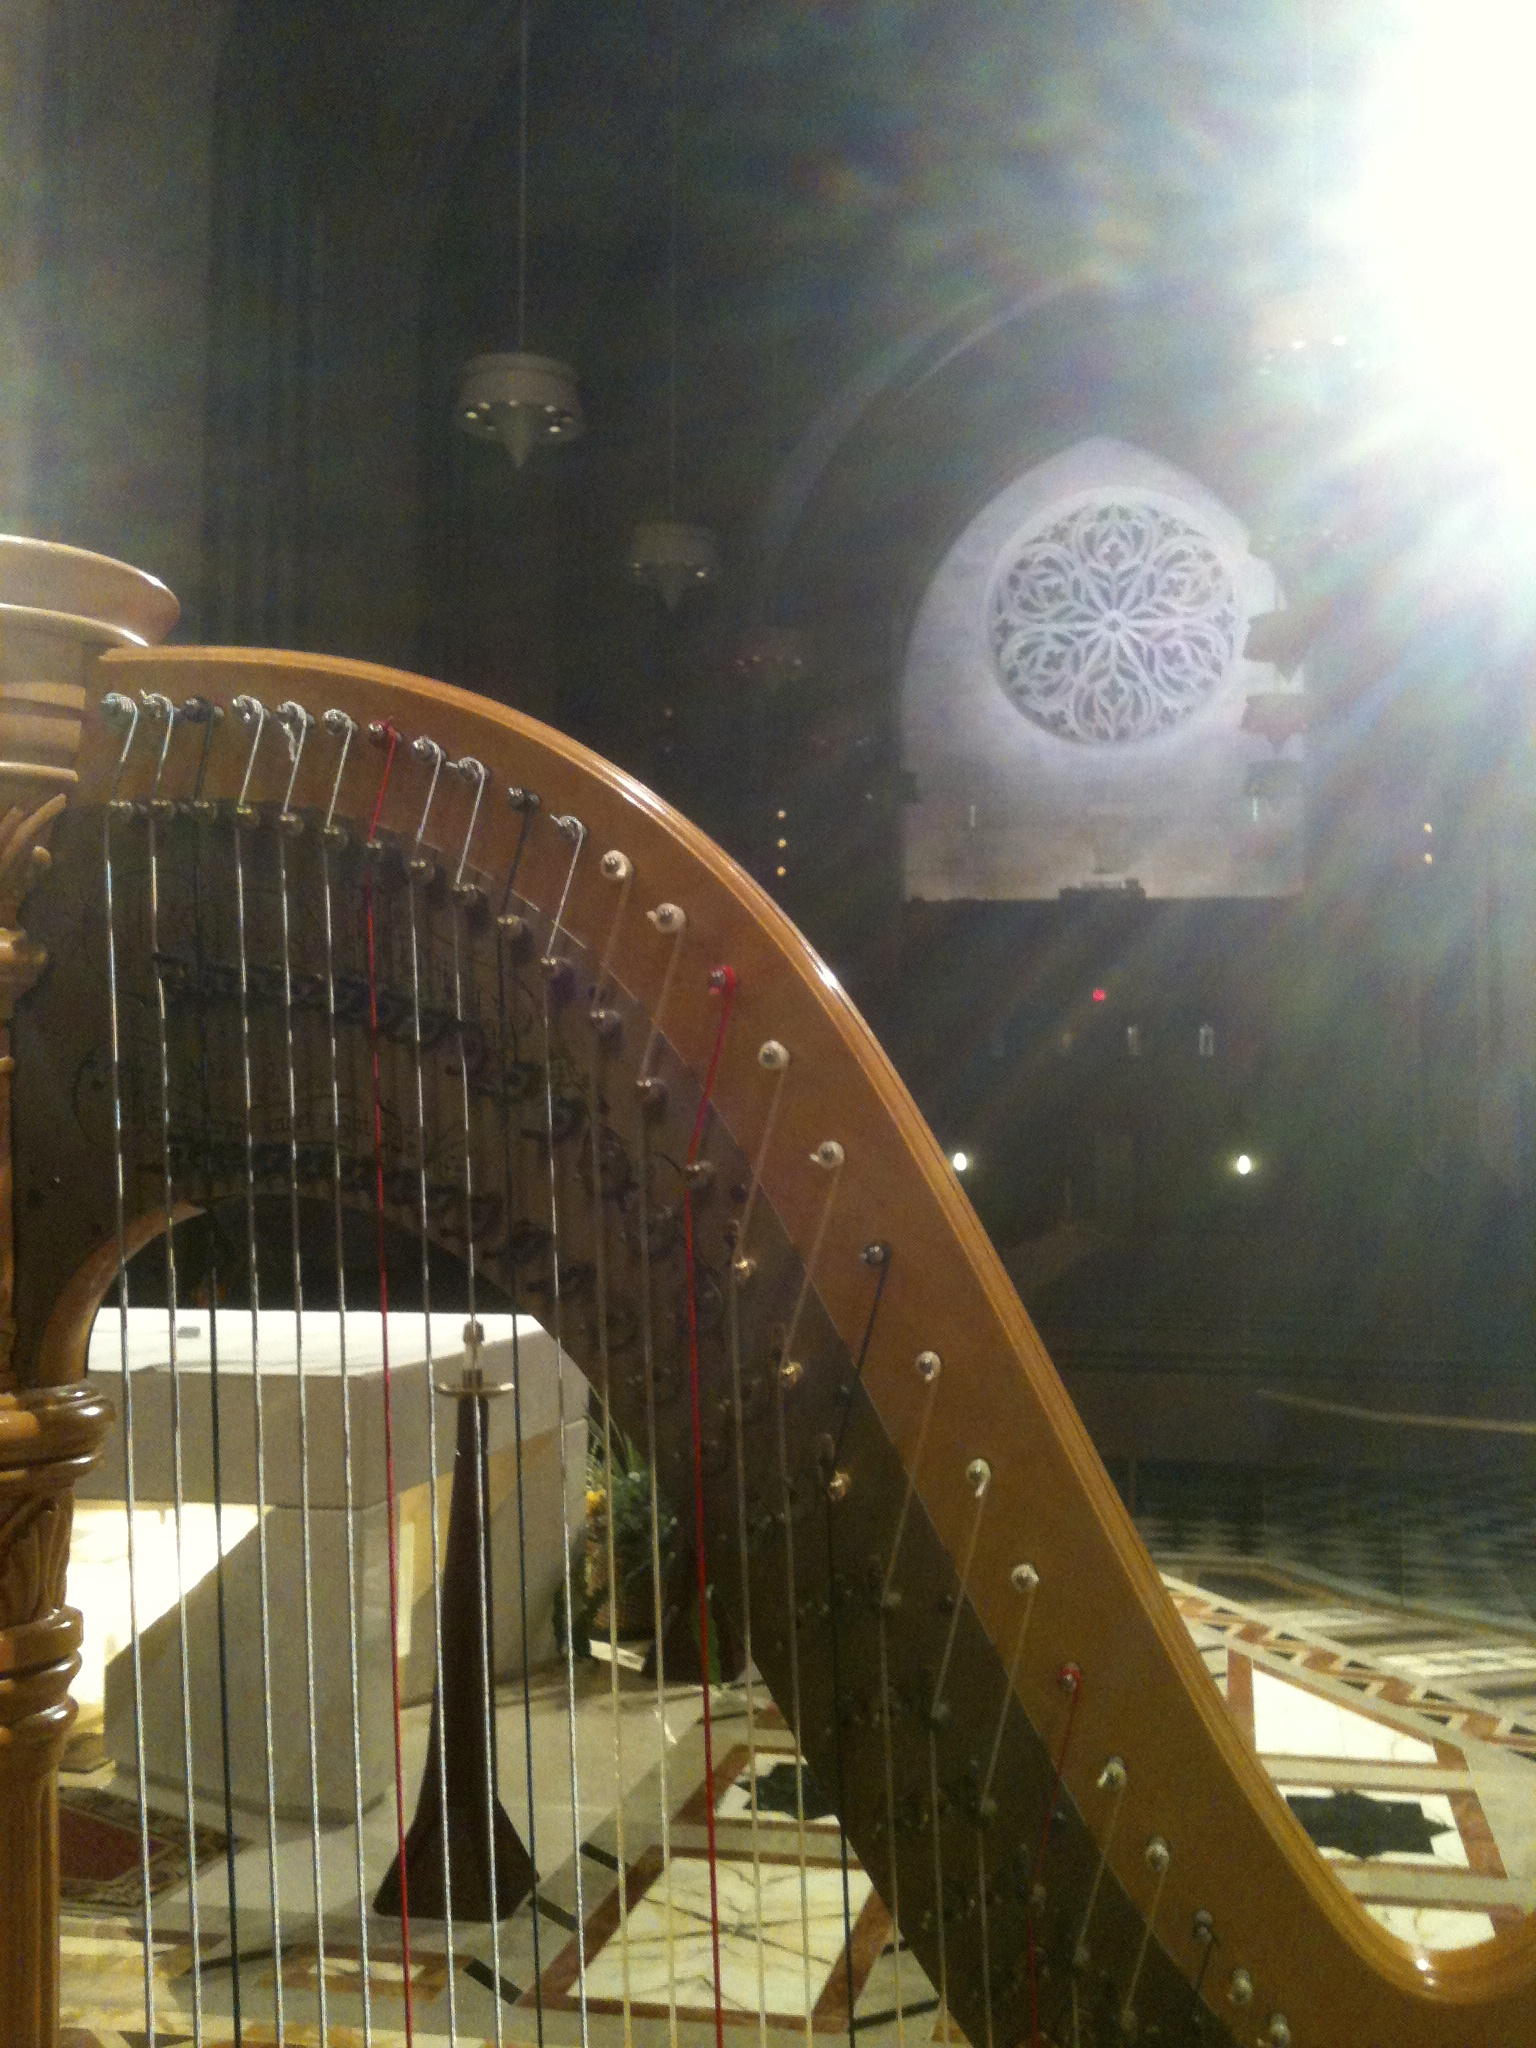 Divine Light is shining down upon the harp.